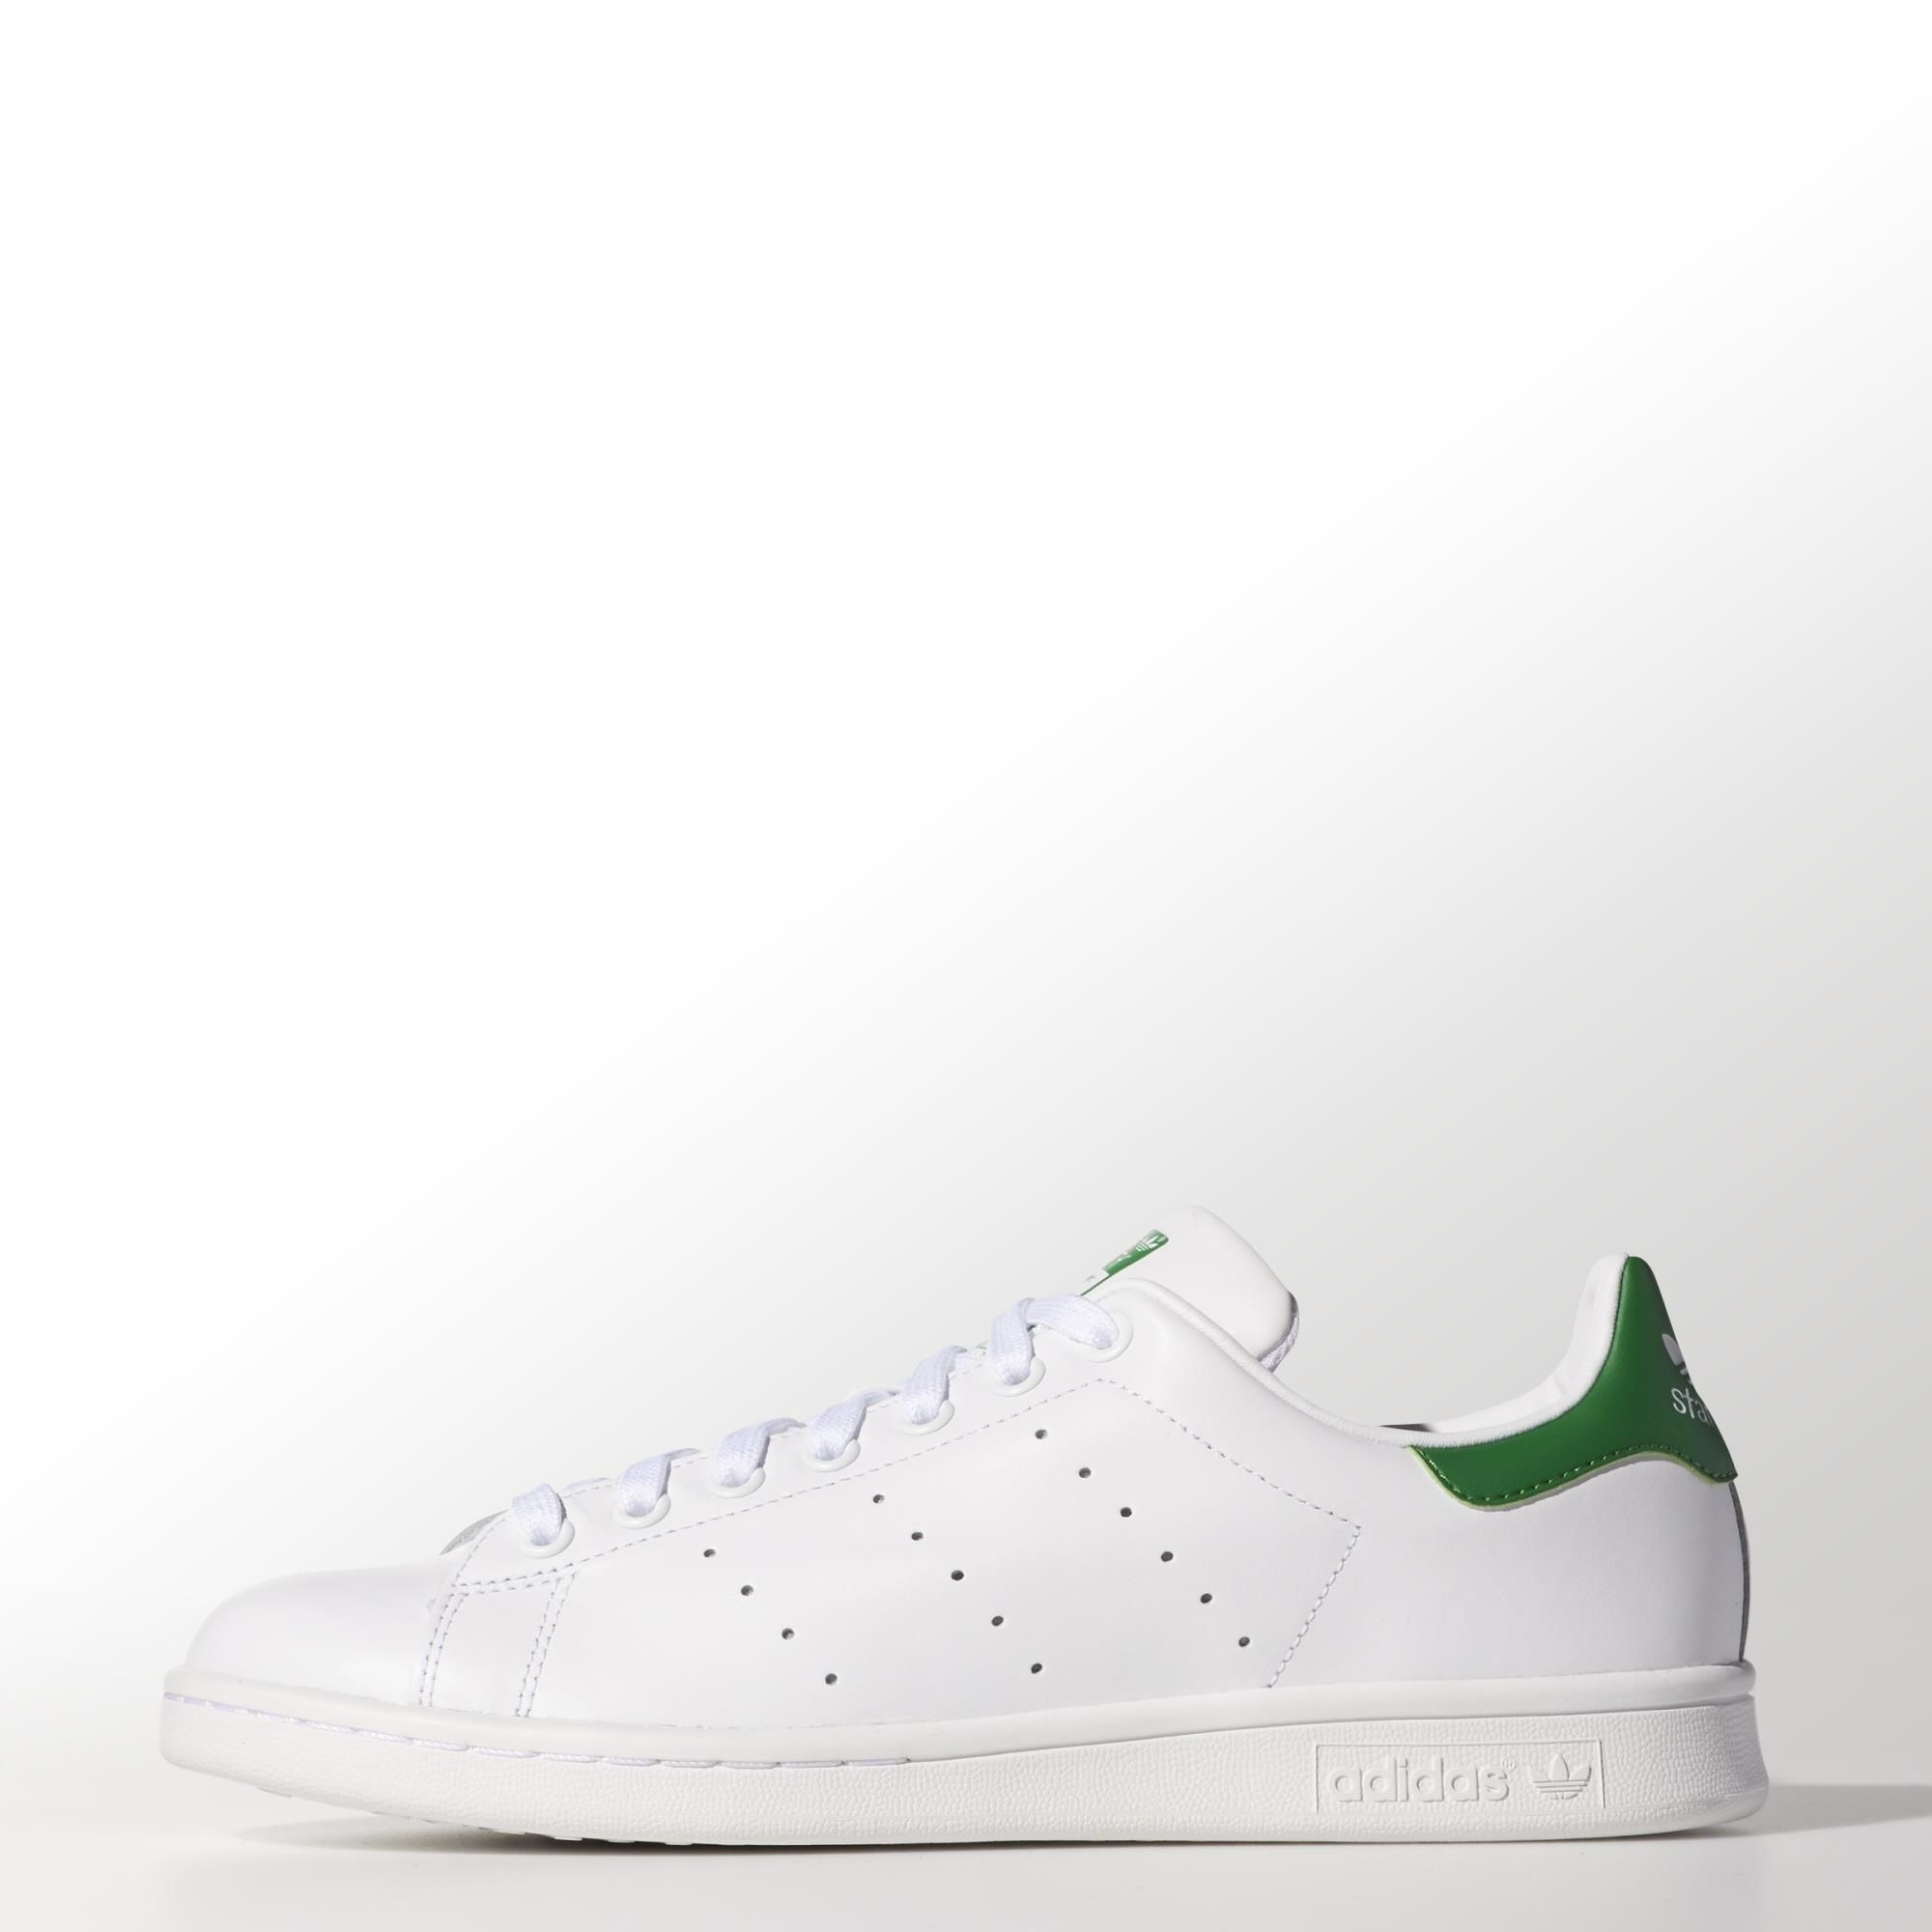 c5cbbce9bd Stan Smith Shoes | Fresh | Stan smith shoes, Stan smith white ...